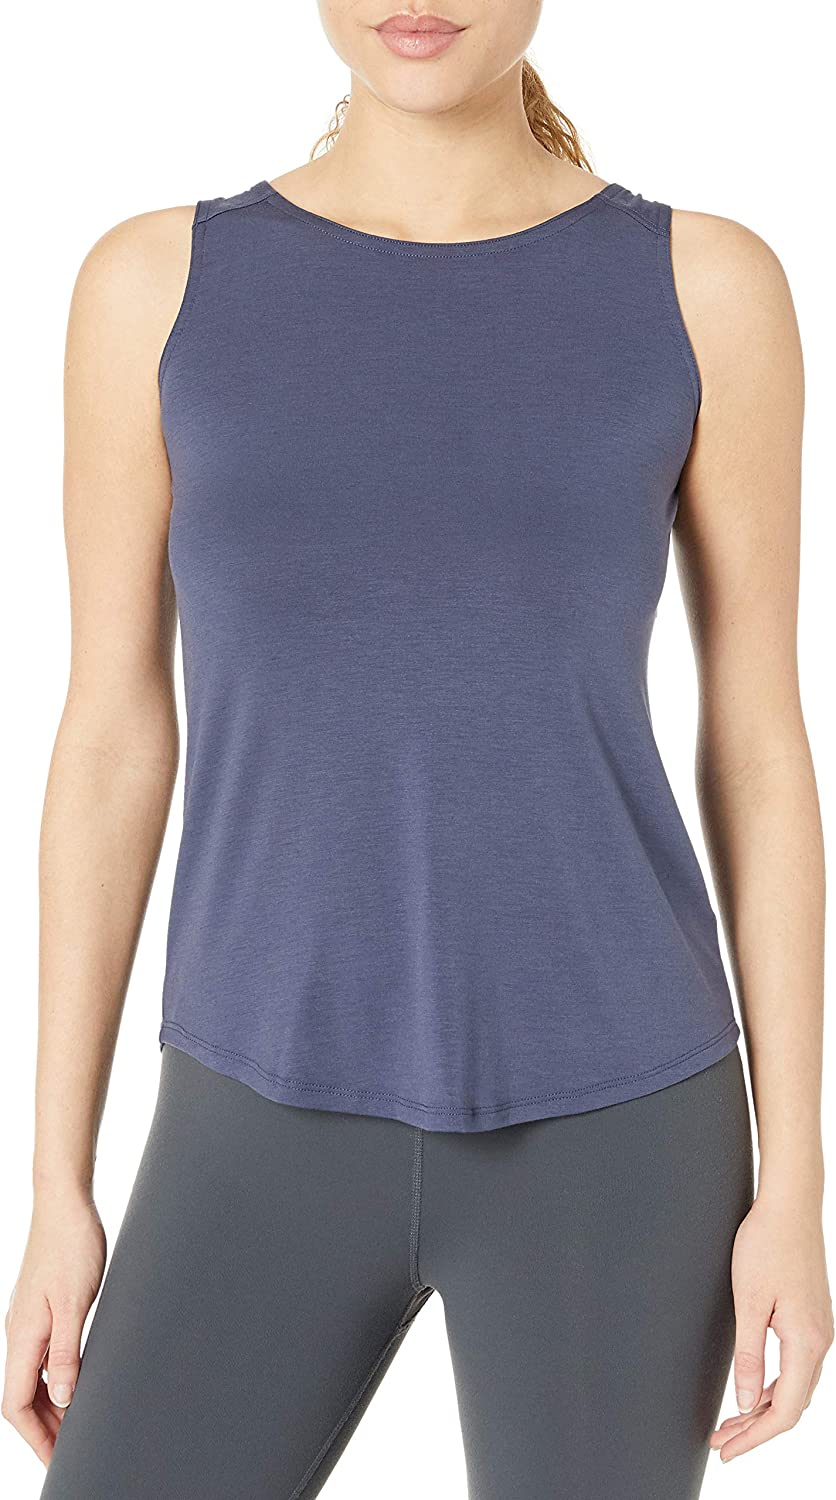 Columbia Women's Essential Elements Sleeveless Tank Top, Moisture Wicking, Sun Protection